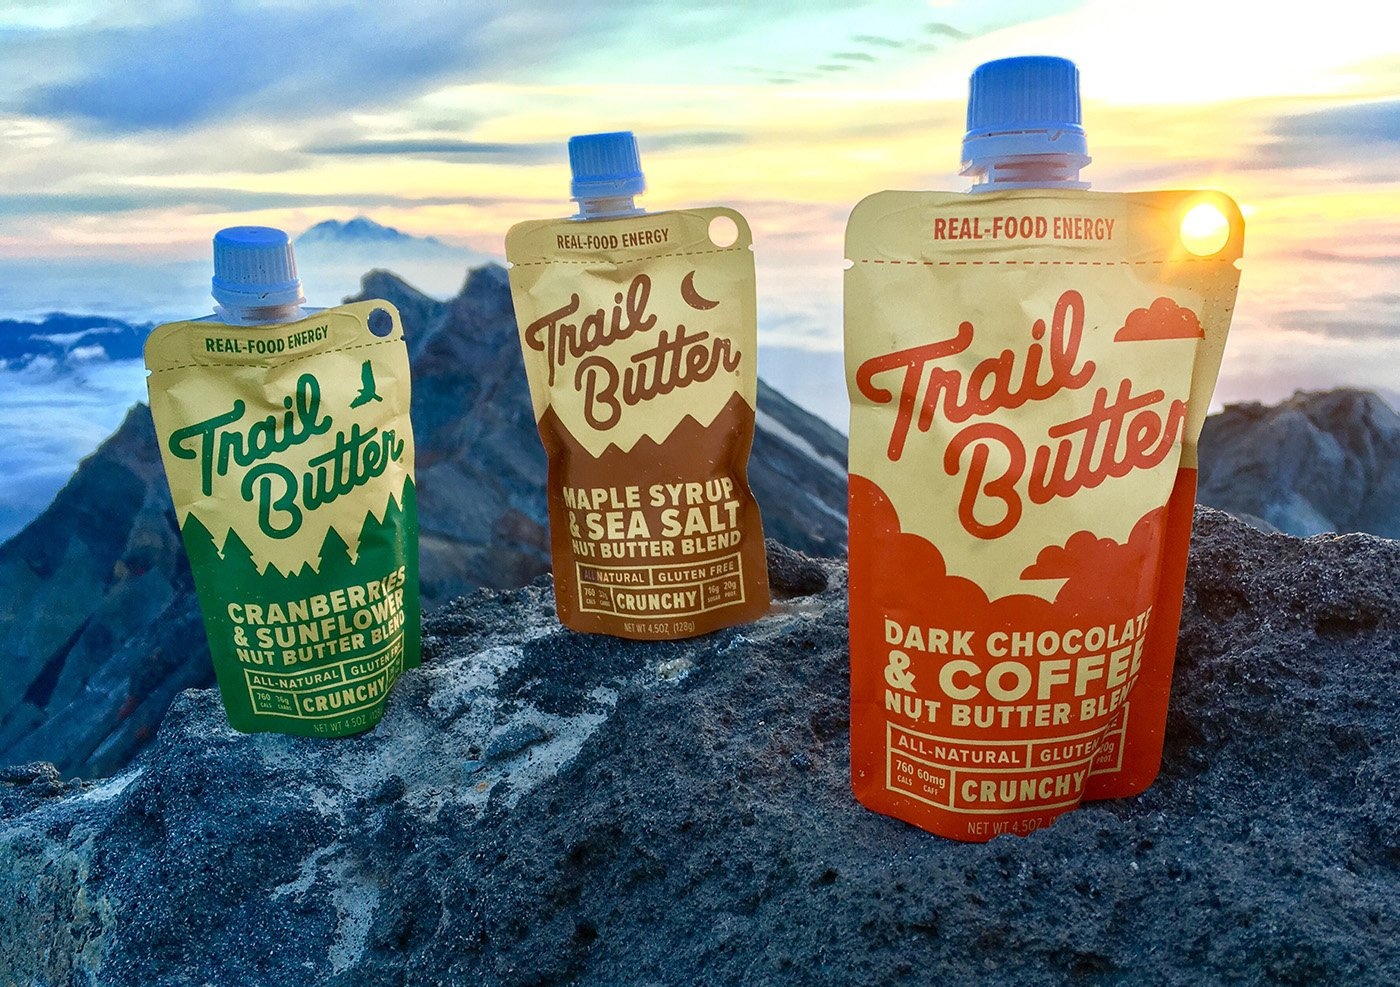 Trail Butter Best Stocking Stuffers Ultralight Backpackers Lightweight Backpacking Accessories Hiking Hikers